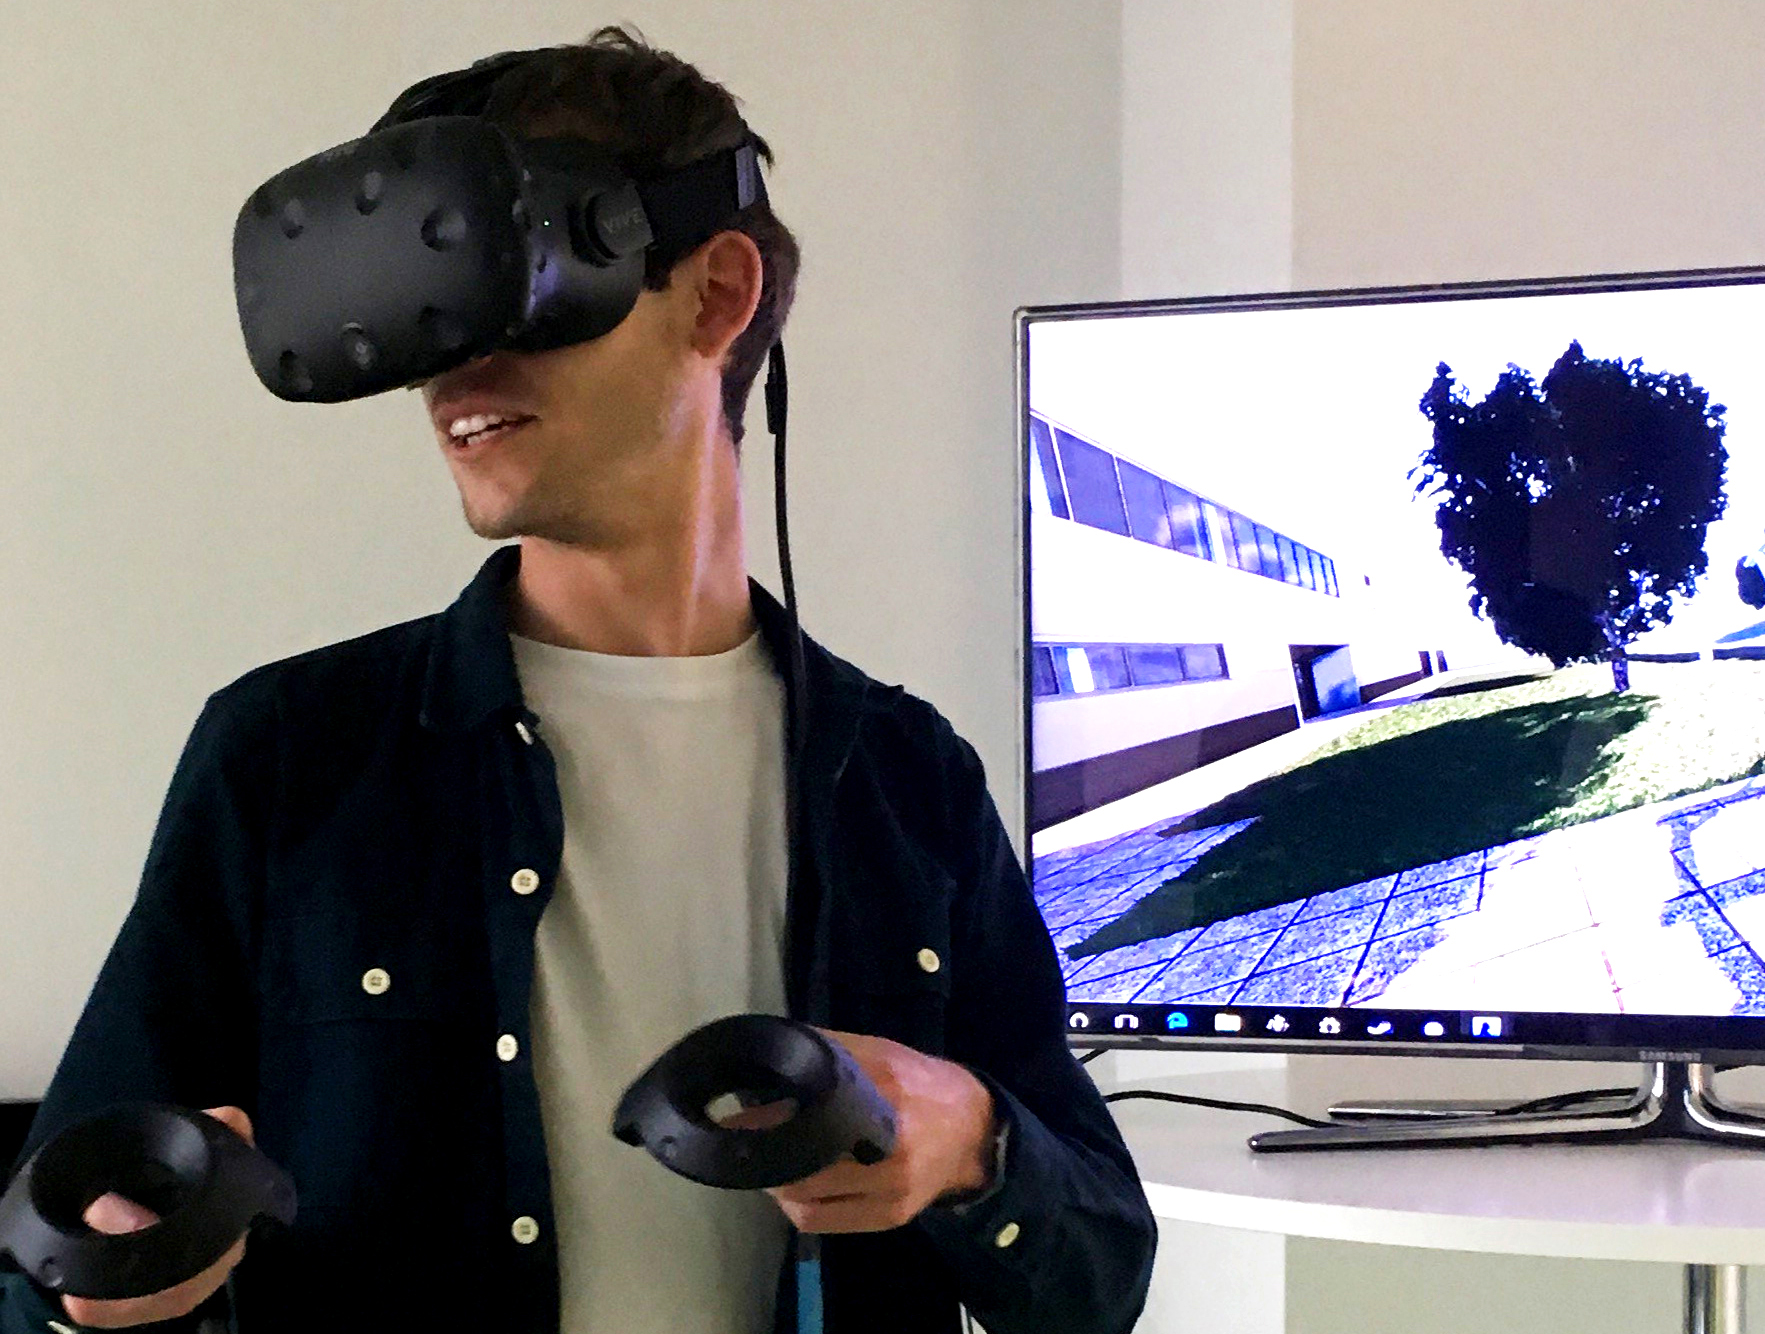 How can VR help develop museum projects?